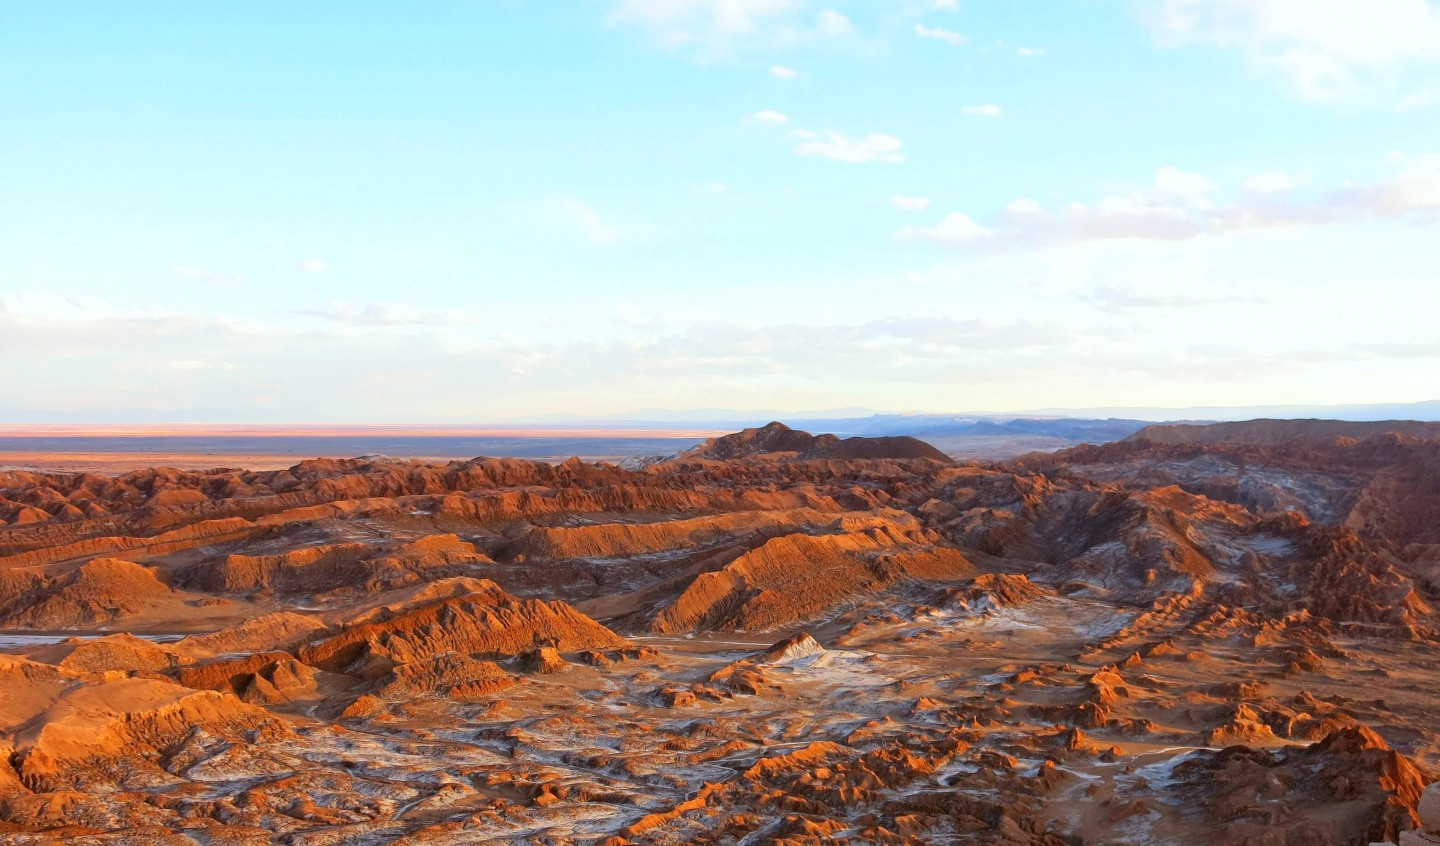 Sunset at Valle de la luna in The Atacama Desert, Chile.